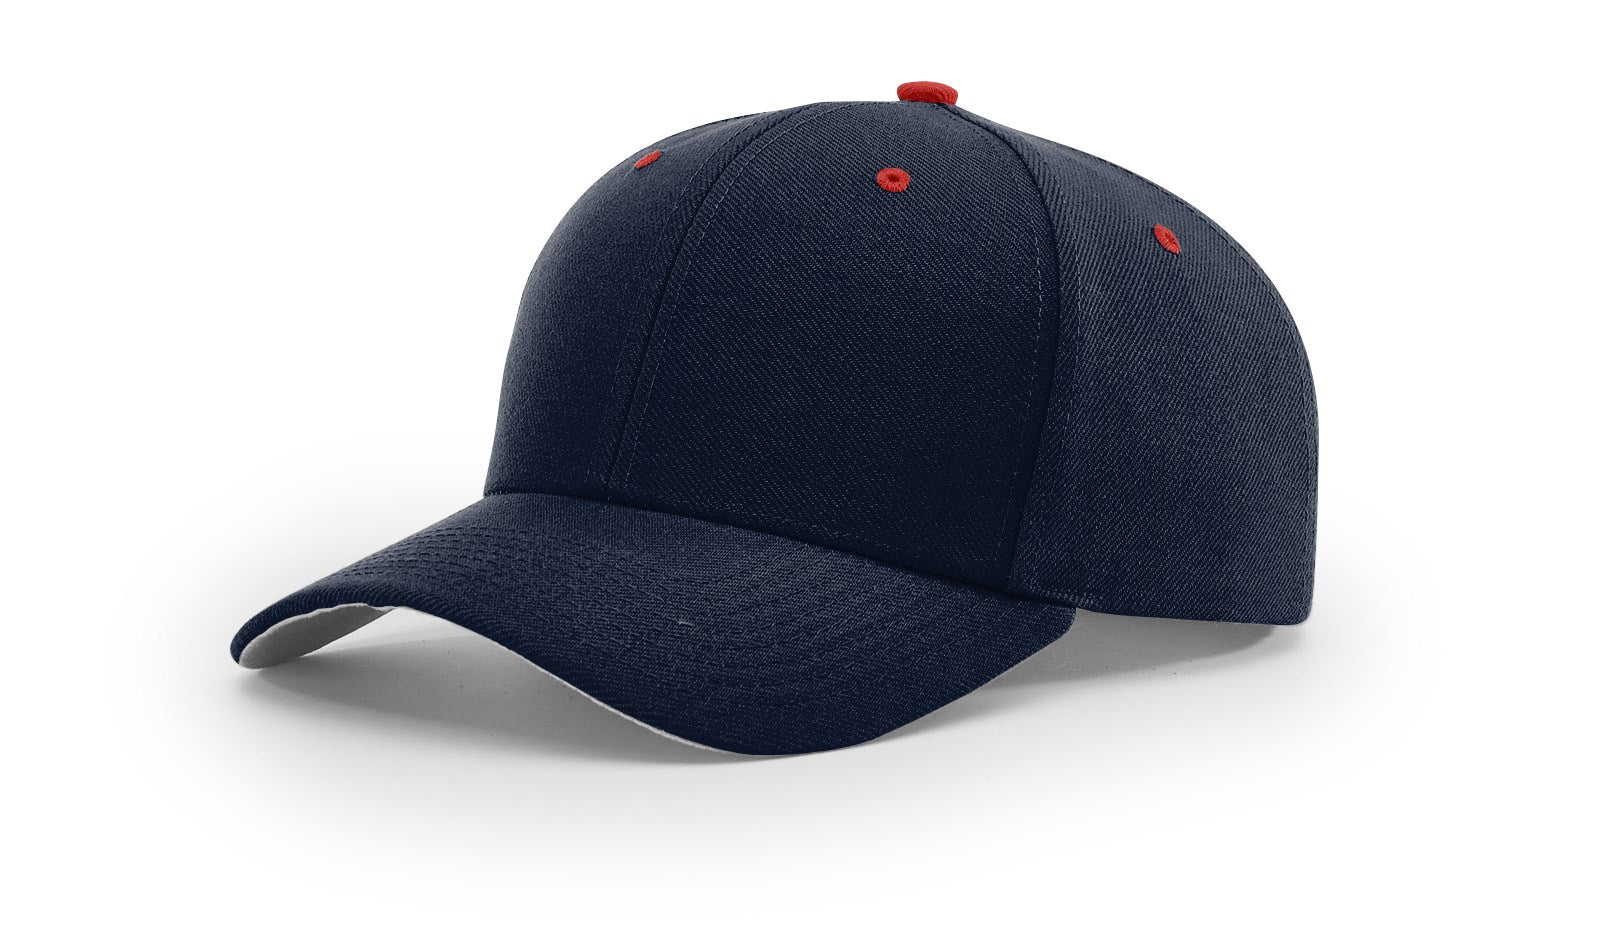 Richardson 514 Strap back Contrast colors Embroidery Available 8 Colors - AtlanticCoastSports